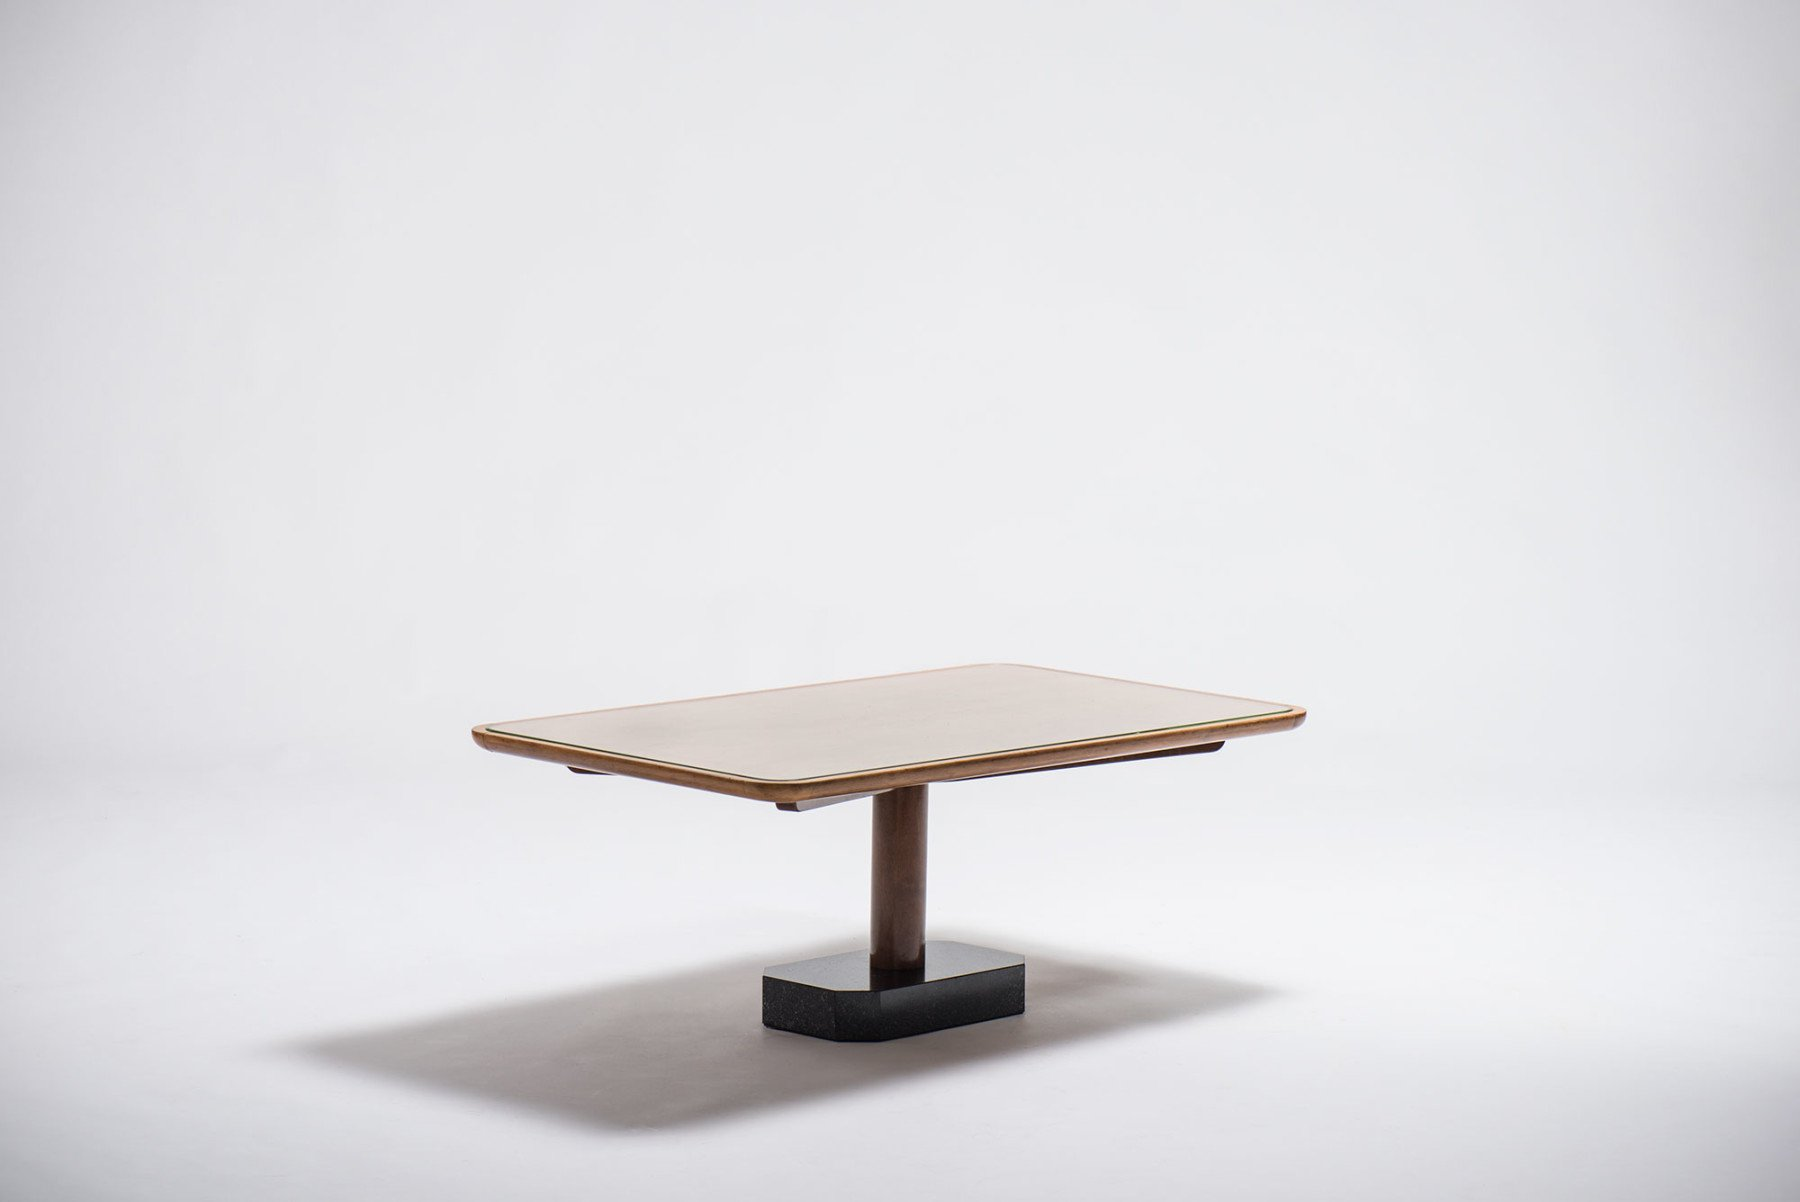 Luigi Caccia Dominioni and Corrado Corradi Dell'Acqua |   Coffee table